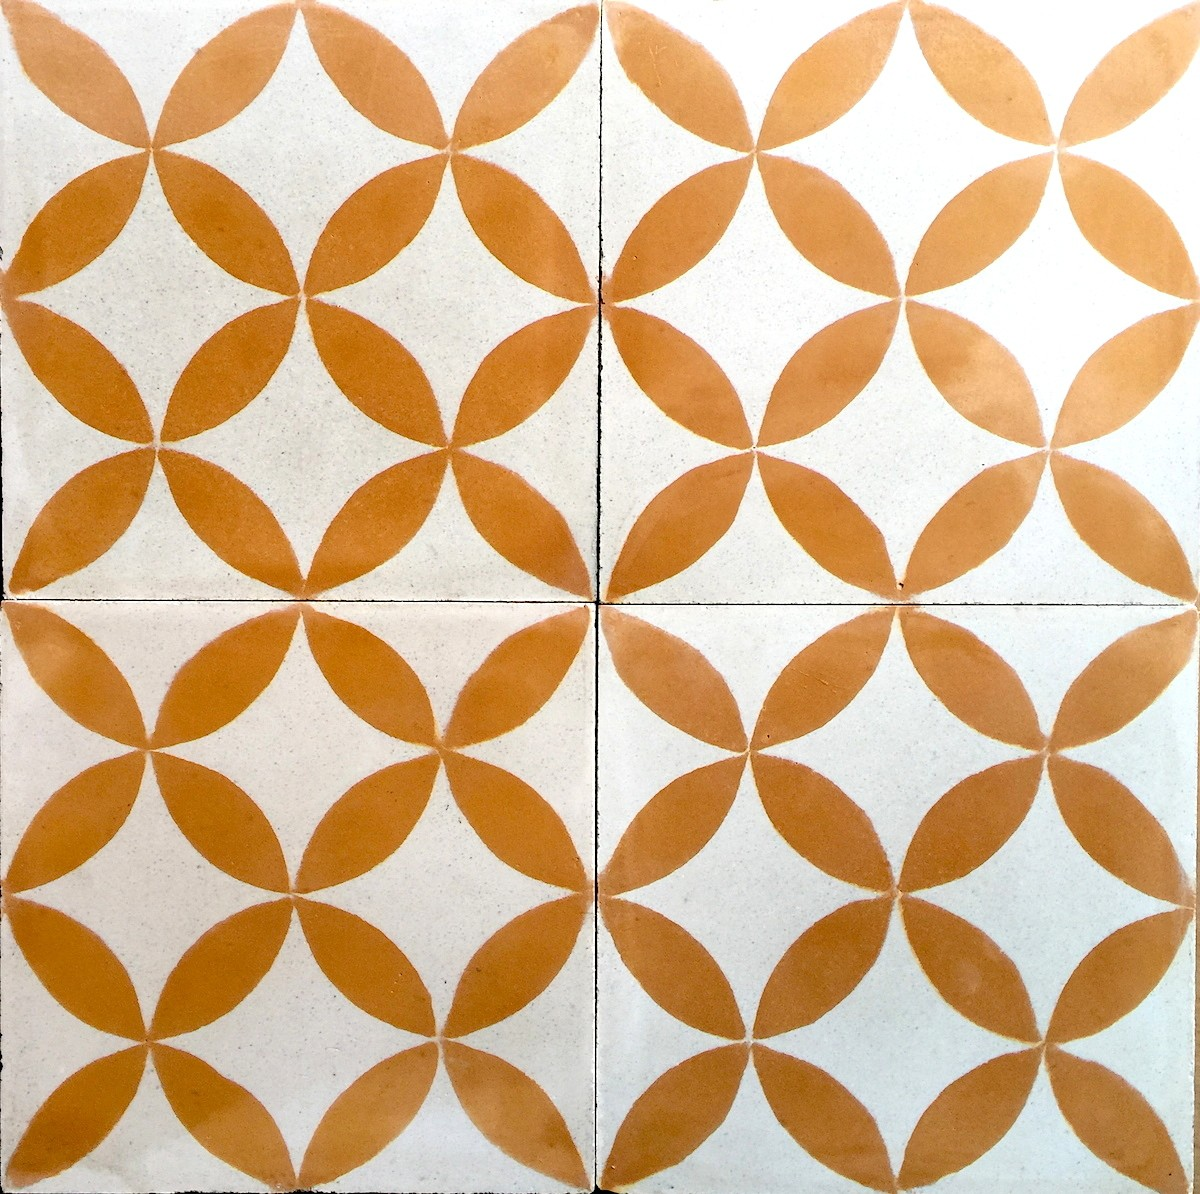 Modele De Carrelage Sol cement tiles for floor and wall sampa-orange